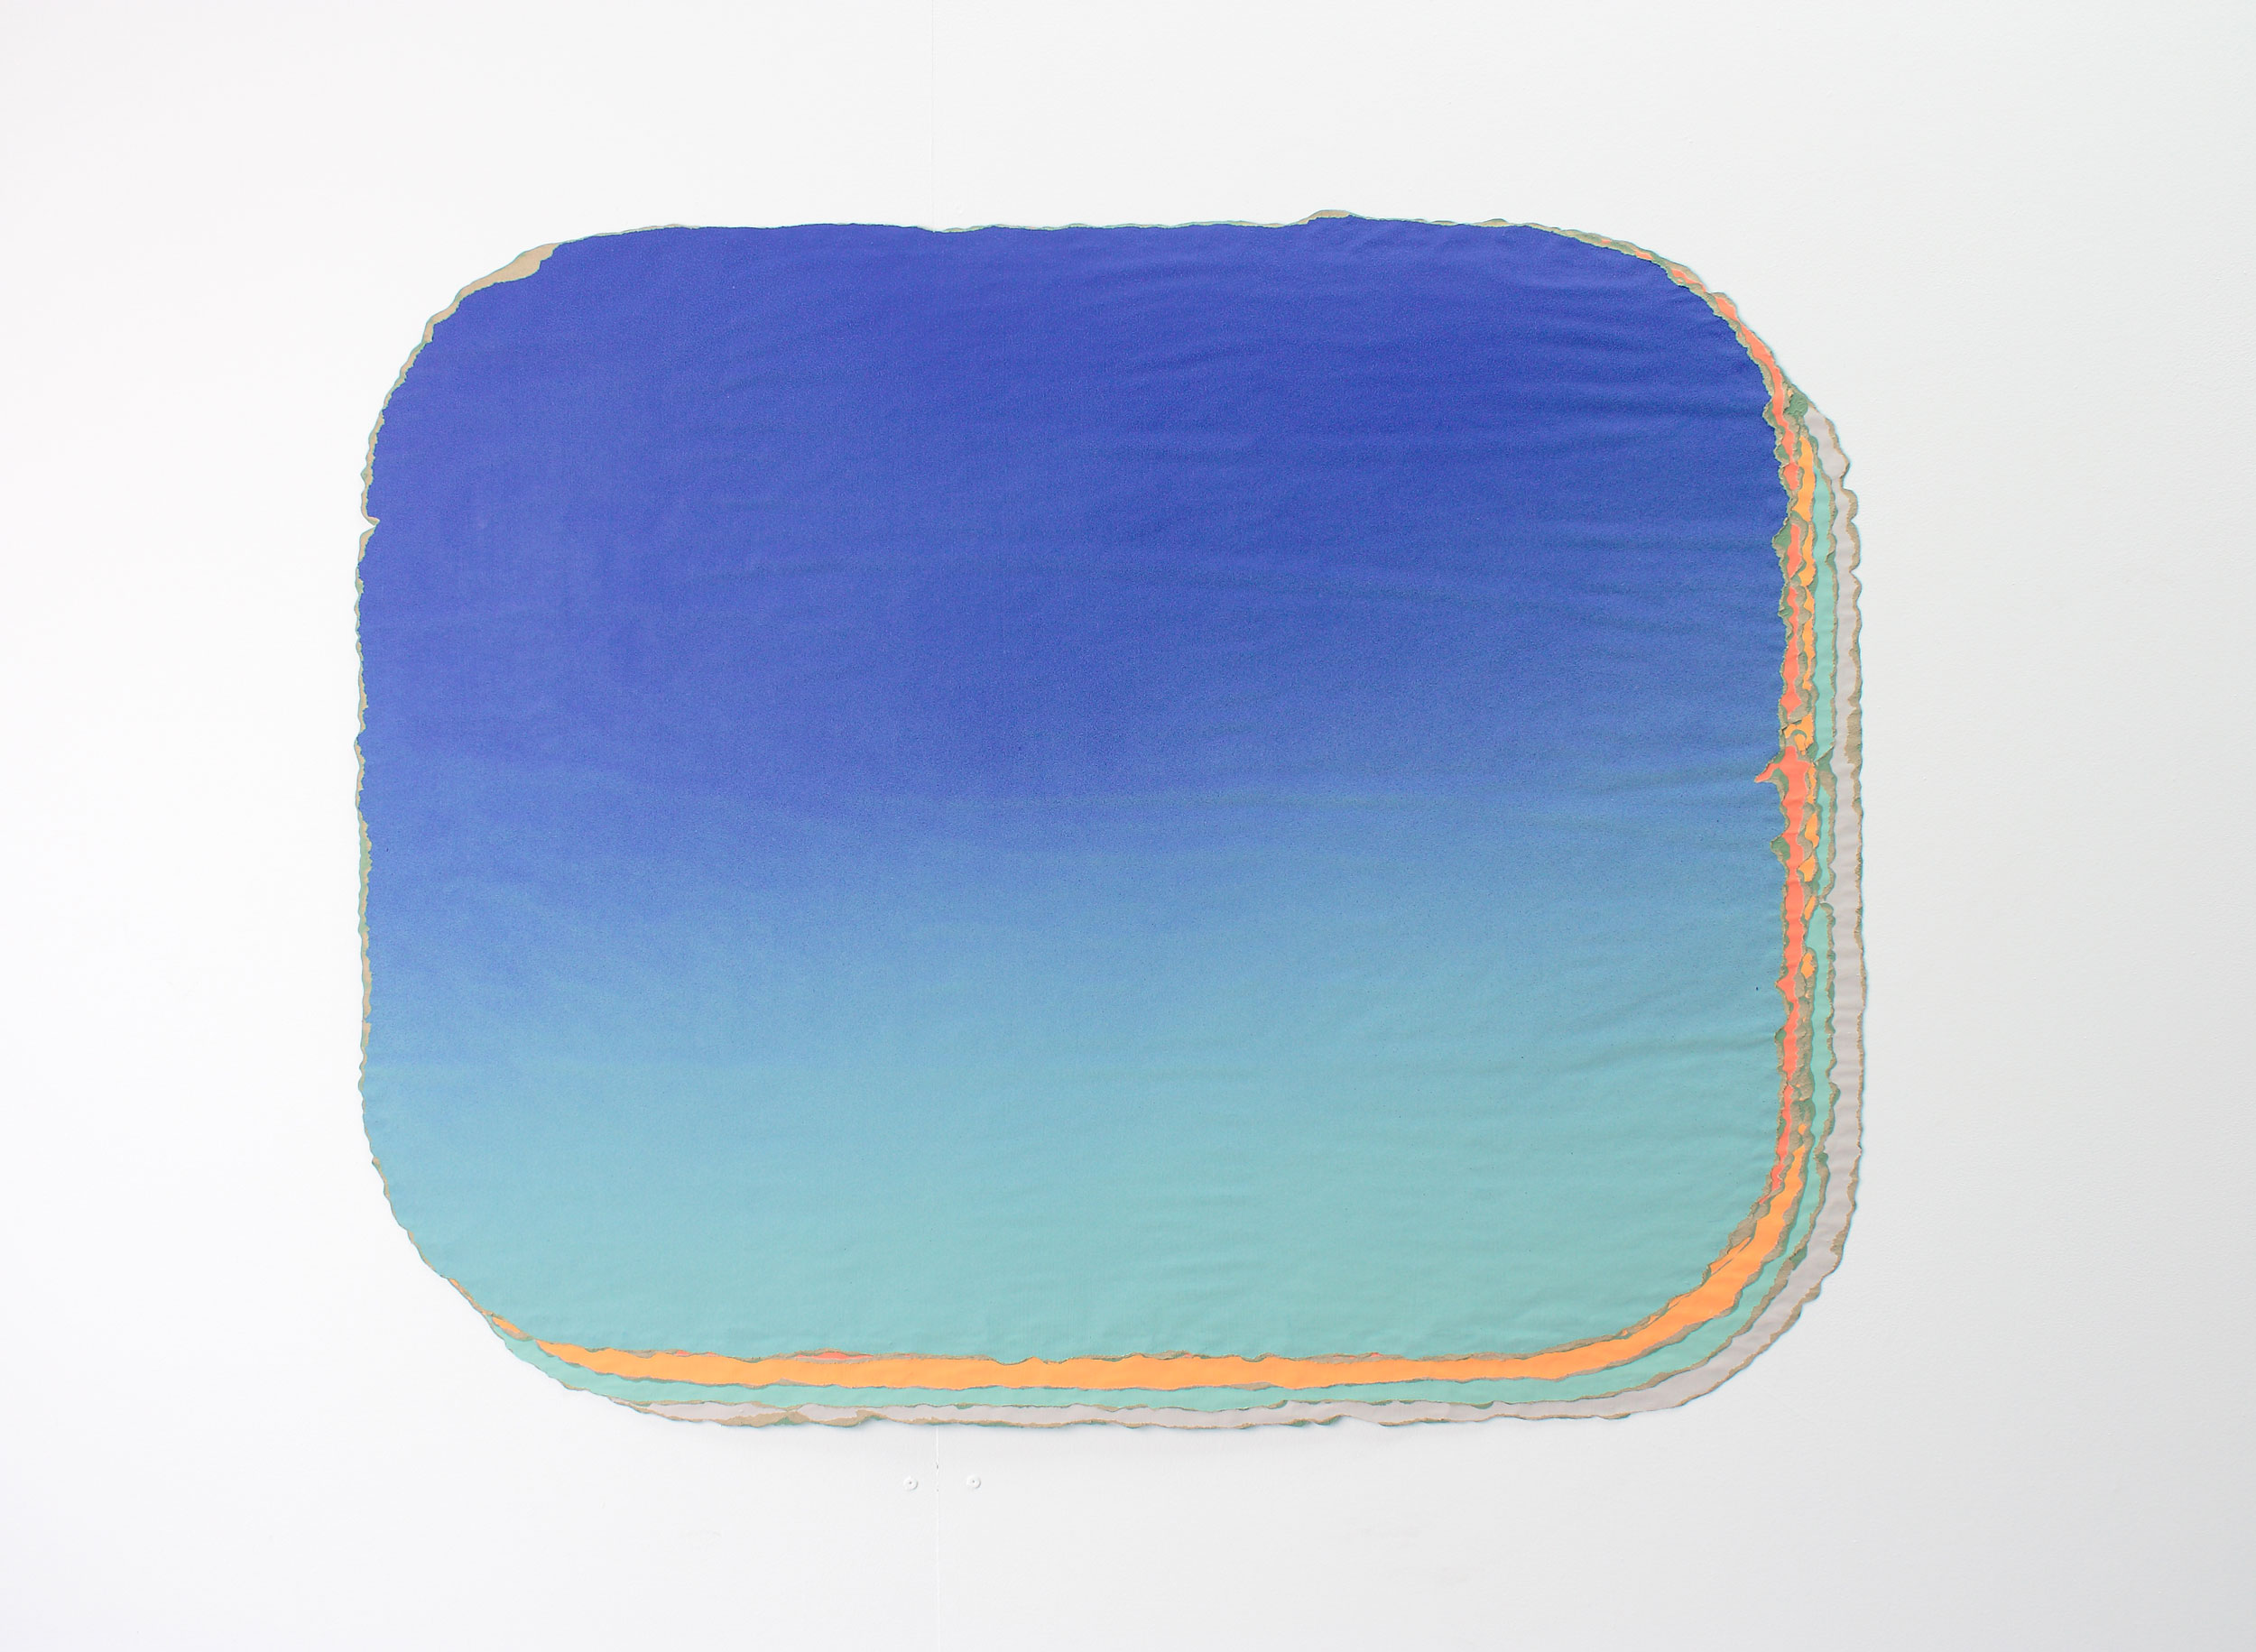 Irène Laub-Guillermo Mora, Colección de fondos (nº 57) _ Collection of backgrounds (nº 57), 2018, Acrylic on paper, 88 x 109 cm (courtesy the Artist and Irène Laub Gallery)